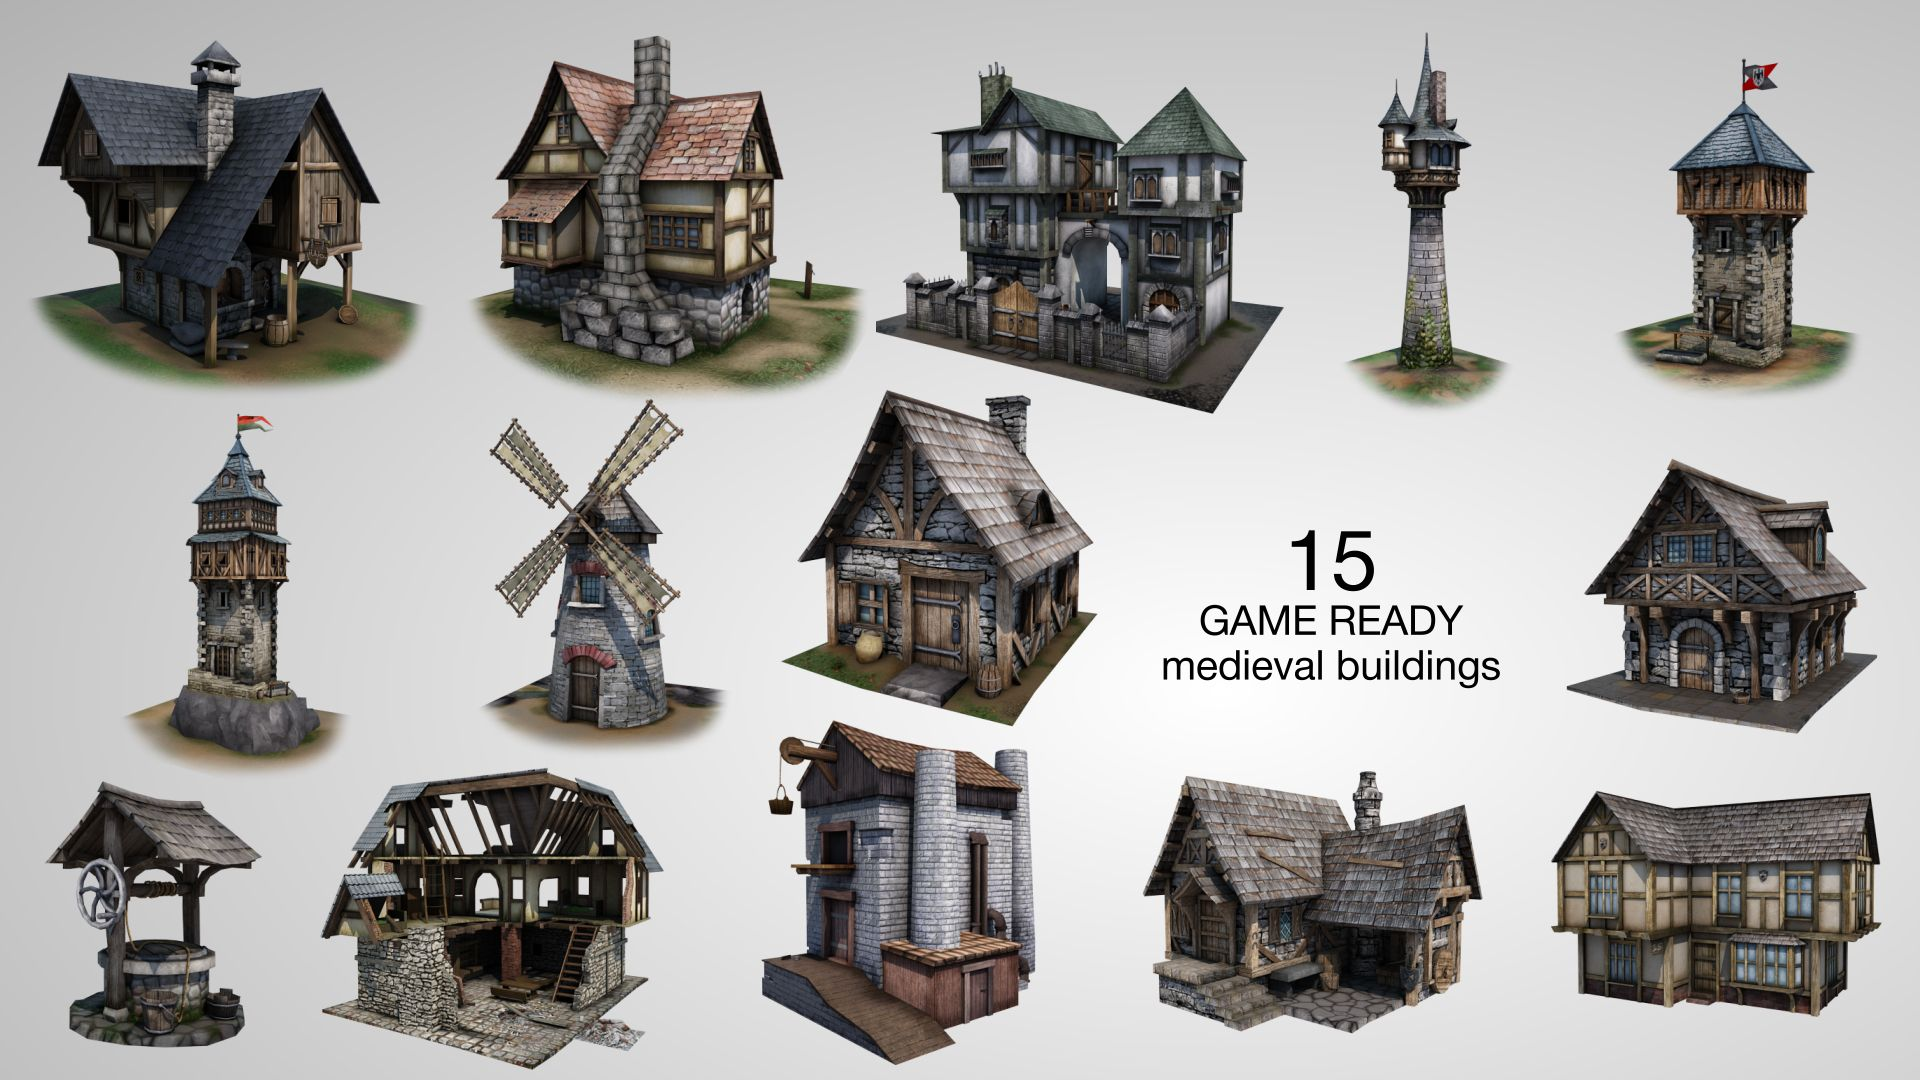 Medieval buildings google search dark fantasy for 3d house building games online